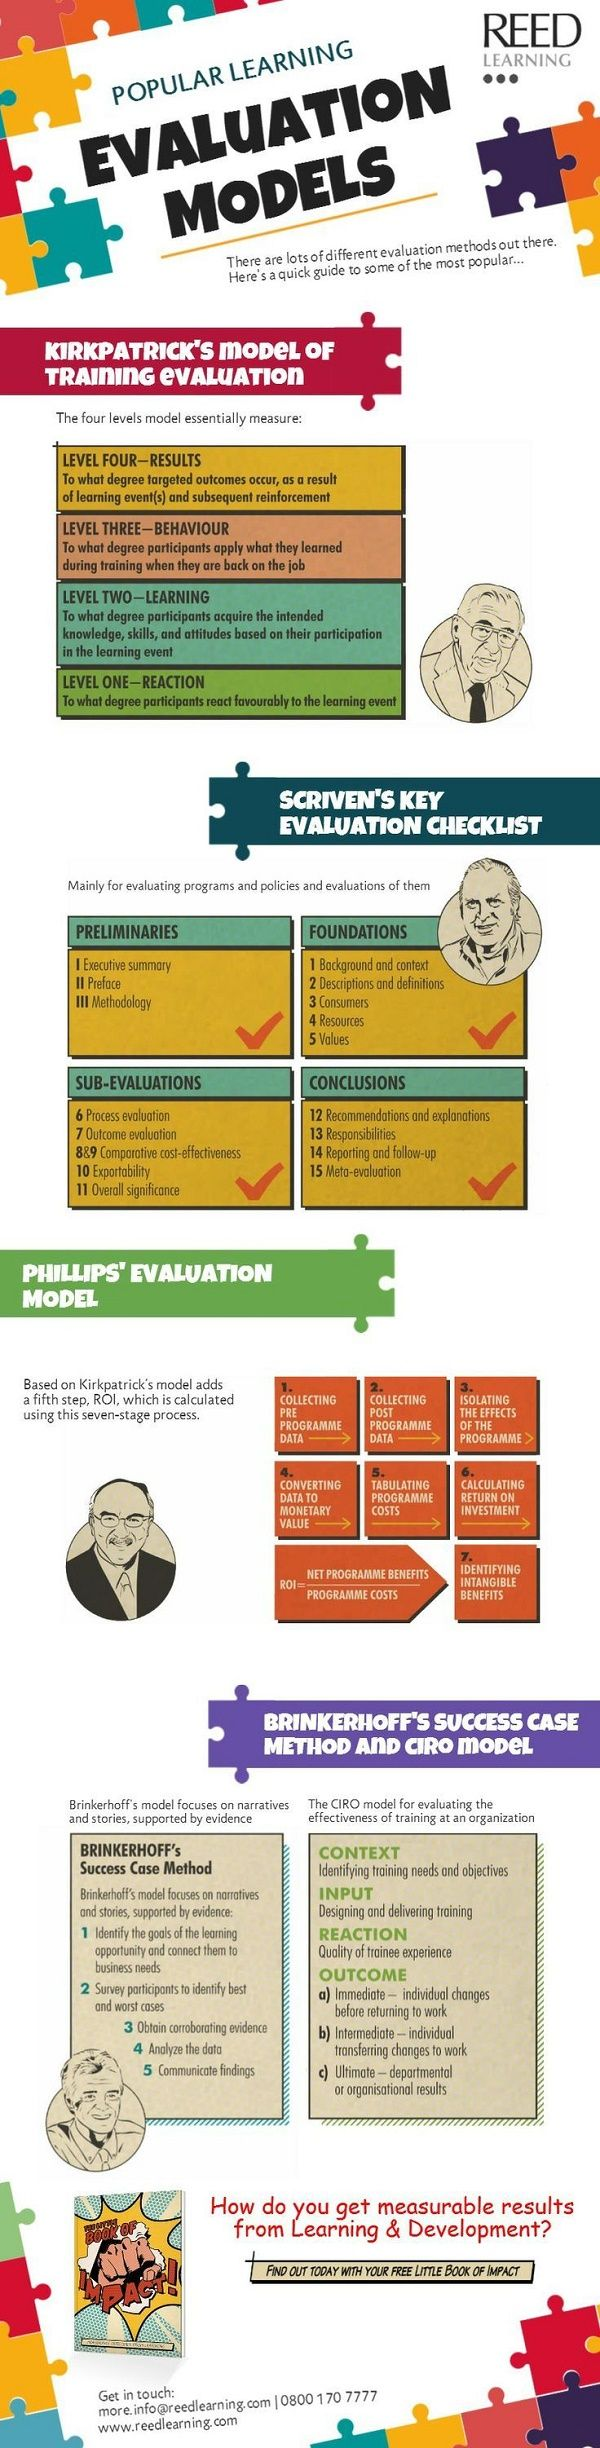 Popular Learning Evaluation Models: An Infographic